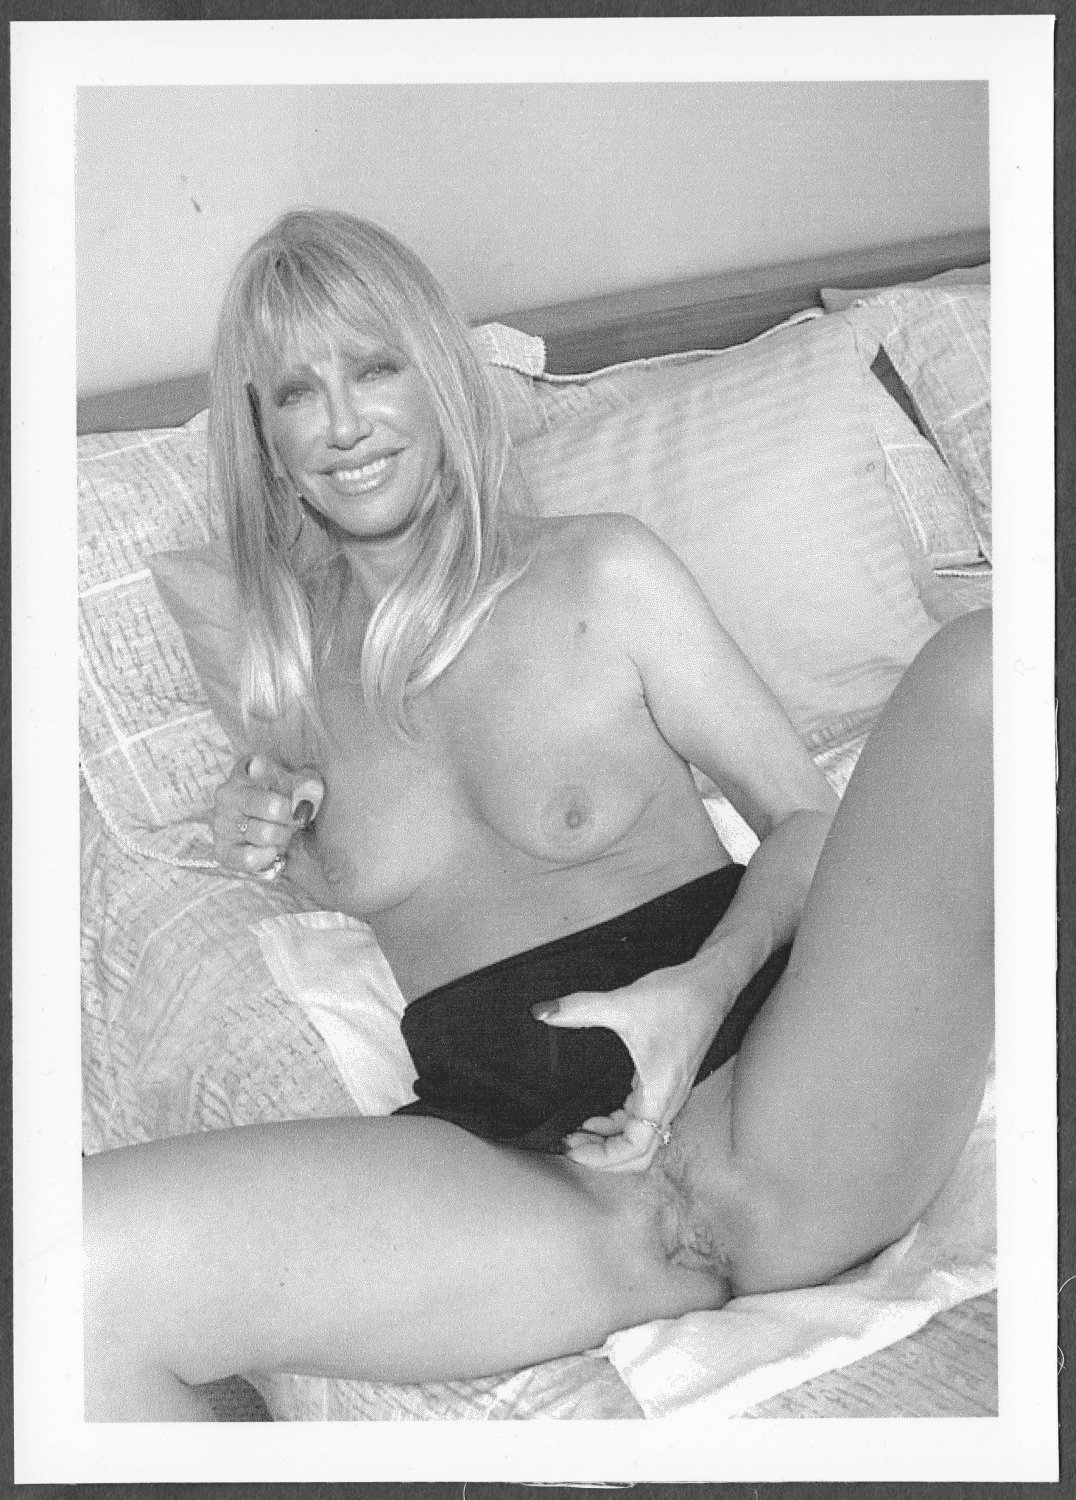 SUZANNE SOMERS TOTALLY NUDE BIG LARGE BREASTS HAIRY PUSSY 5X7 REPRINT SS-05